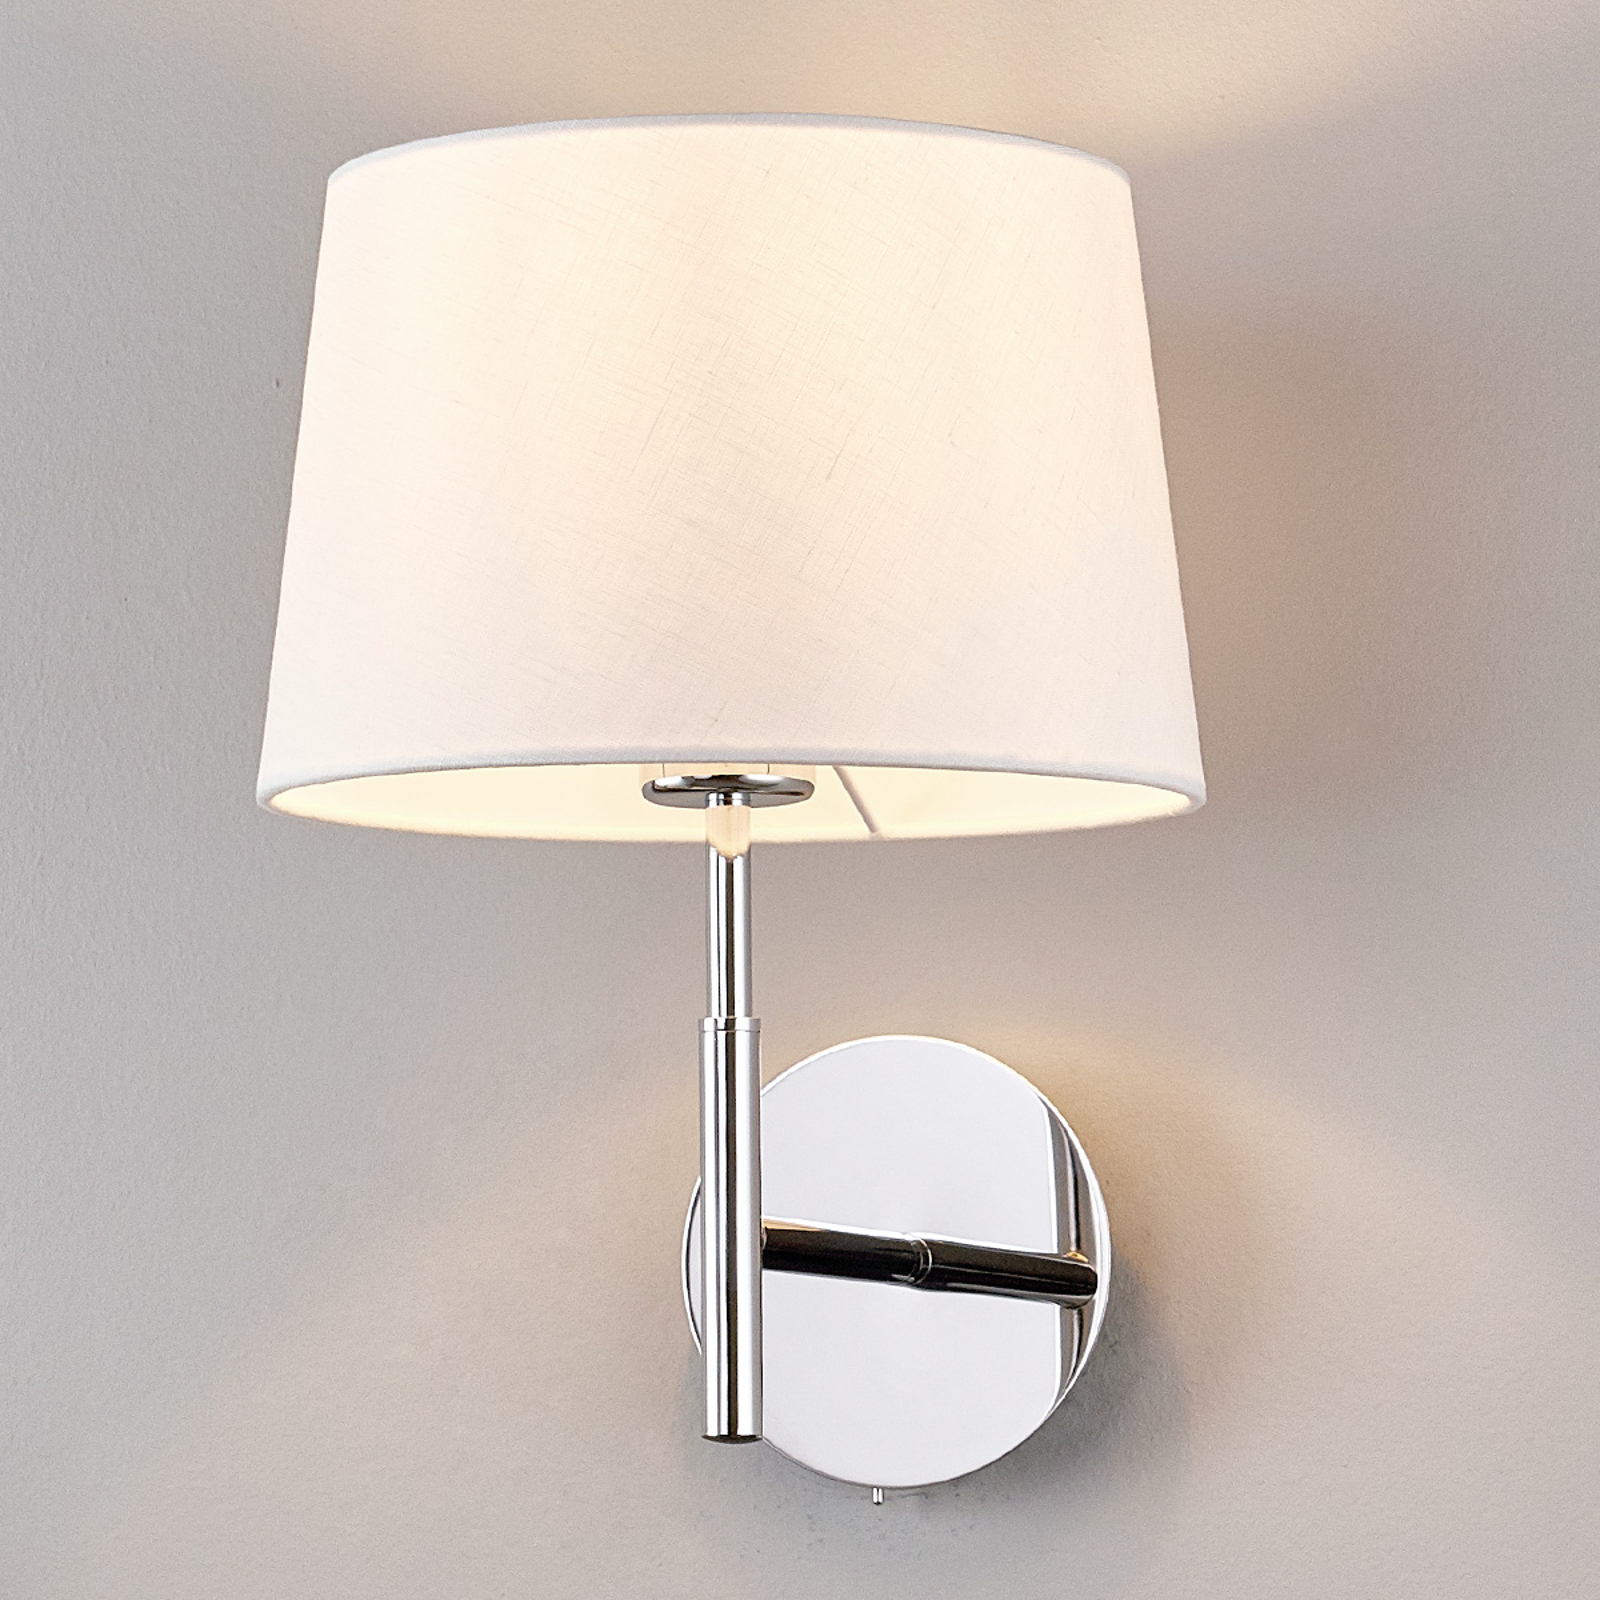 Pretty wall lamp Dorothea with white fabric shade_9976014_1